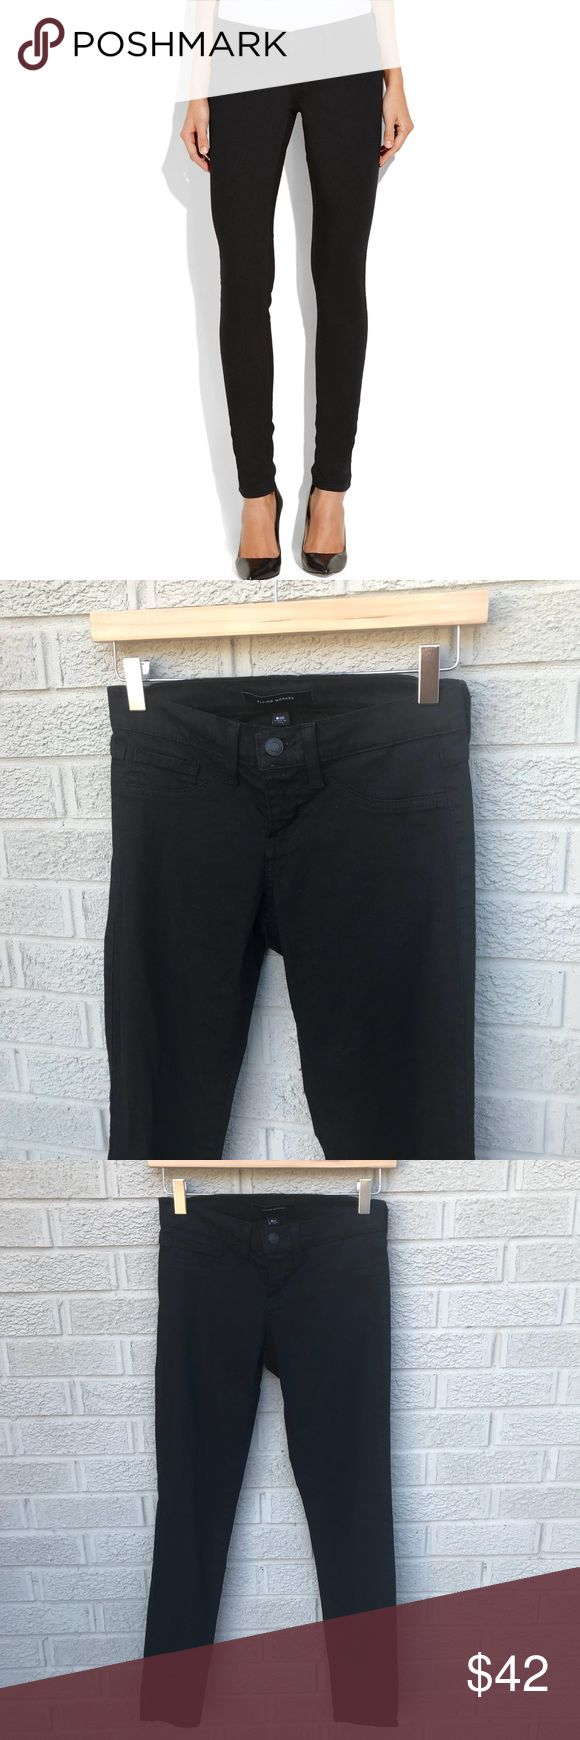 """Flying Monkey Faux Pocket Skinny Jeans - Black Flying Monkey Faux Pocket Skinny Jeans in Black! Super soft & stretchy! Ultra flattering! Size 25. 42% Lyocell, 33% Cotton, 15% Rayon, 9% Poly & 1% Spandex. 13"""" across the waist,  7.5"""" Rise & 28"""" inseam. Previously loved. KG Flying Monkey Jeans Skinny"""